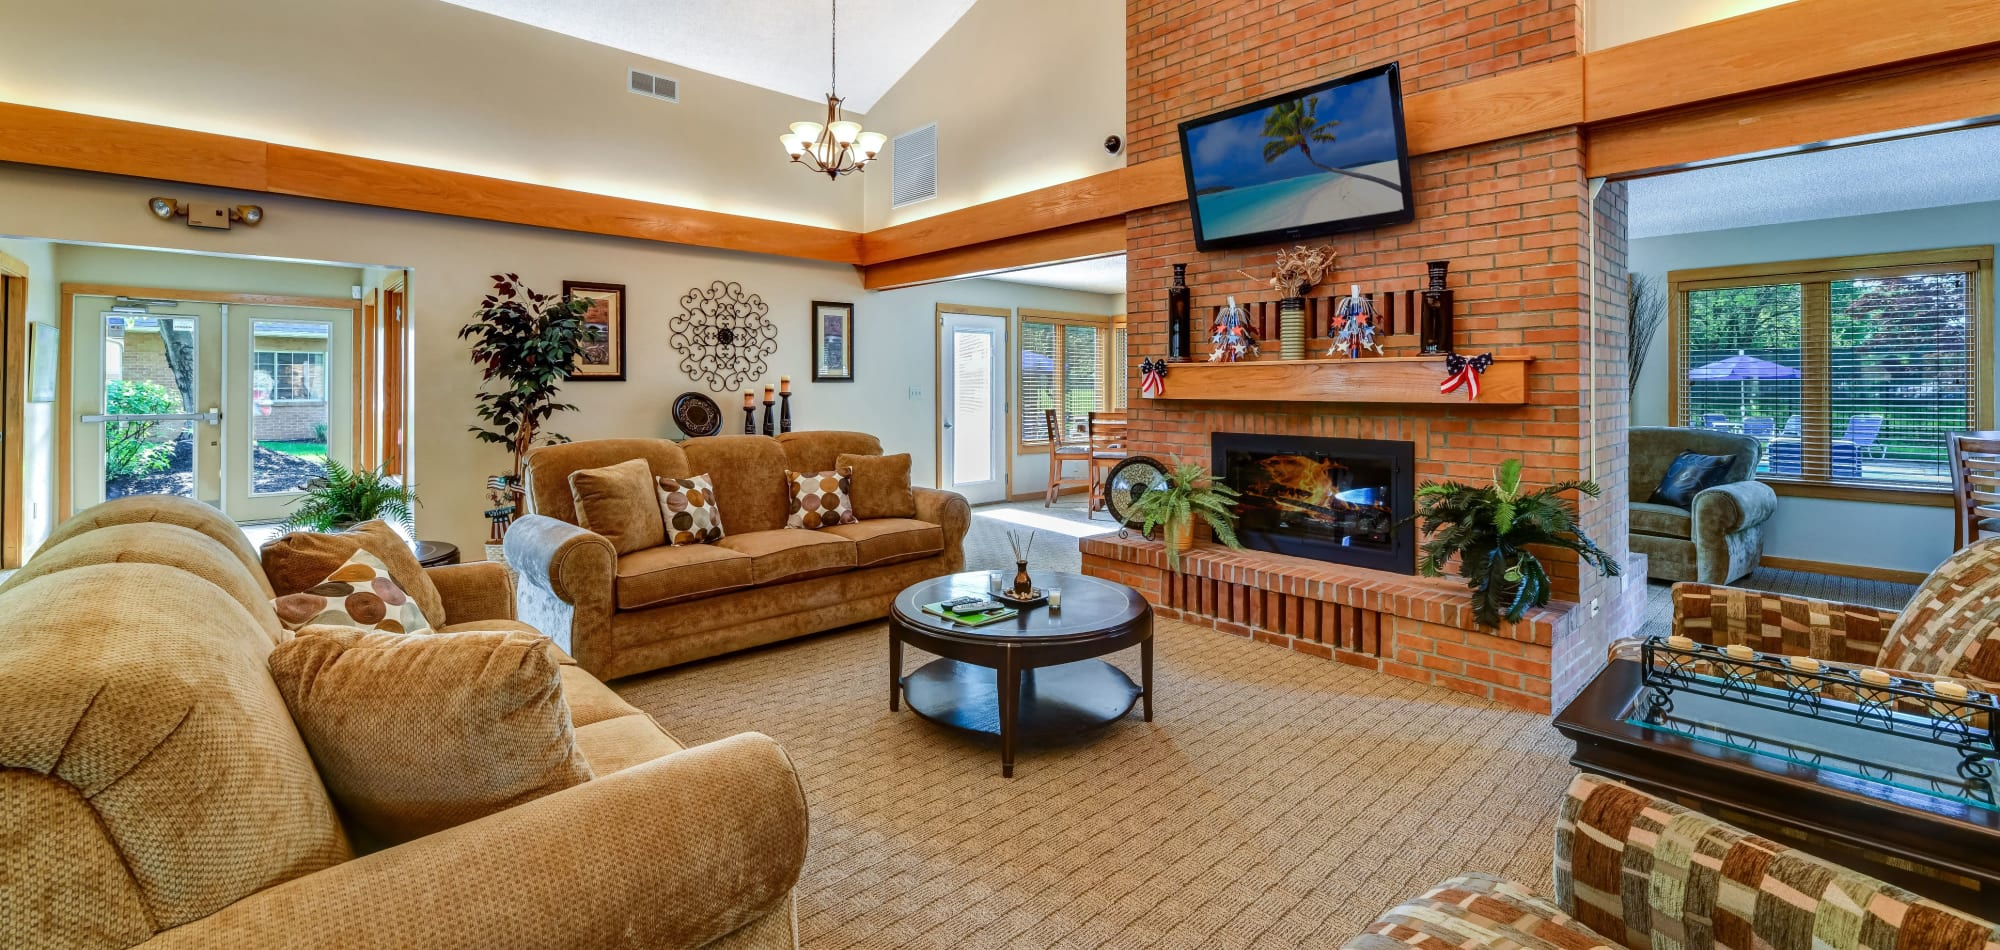 Apartments for rent at Brittany Bay Apartments and Townhomes in Groveport, Ohio